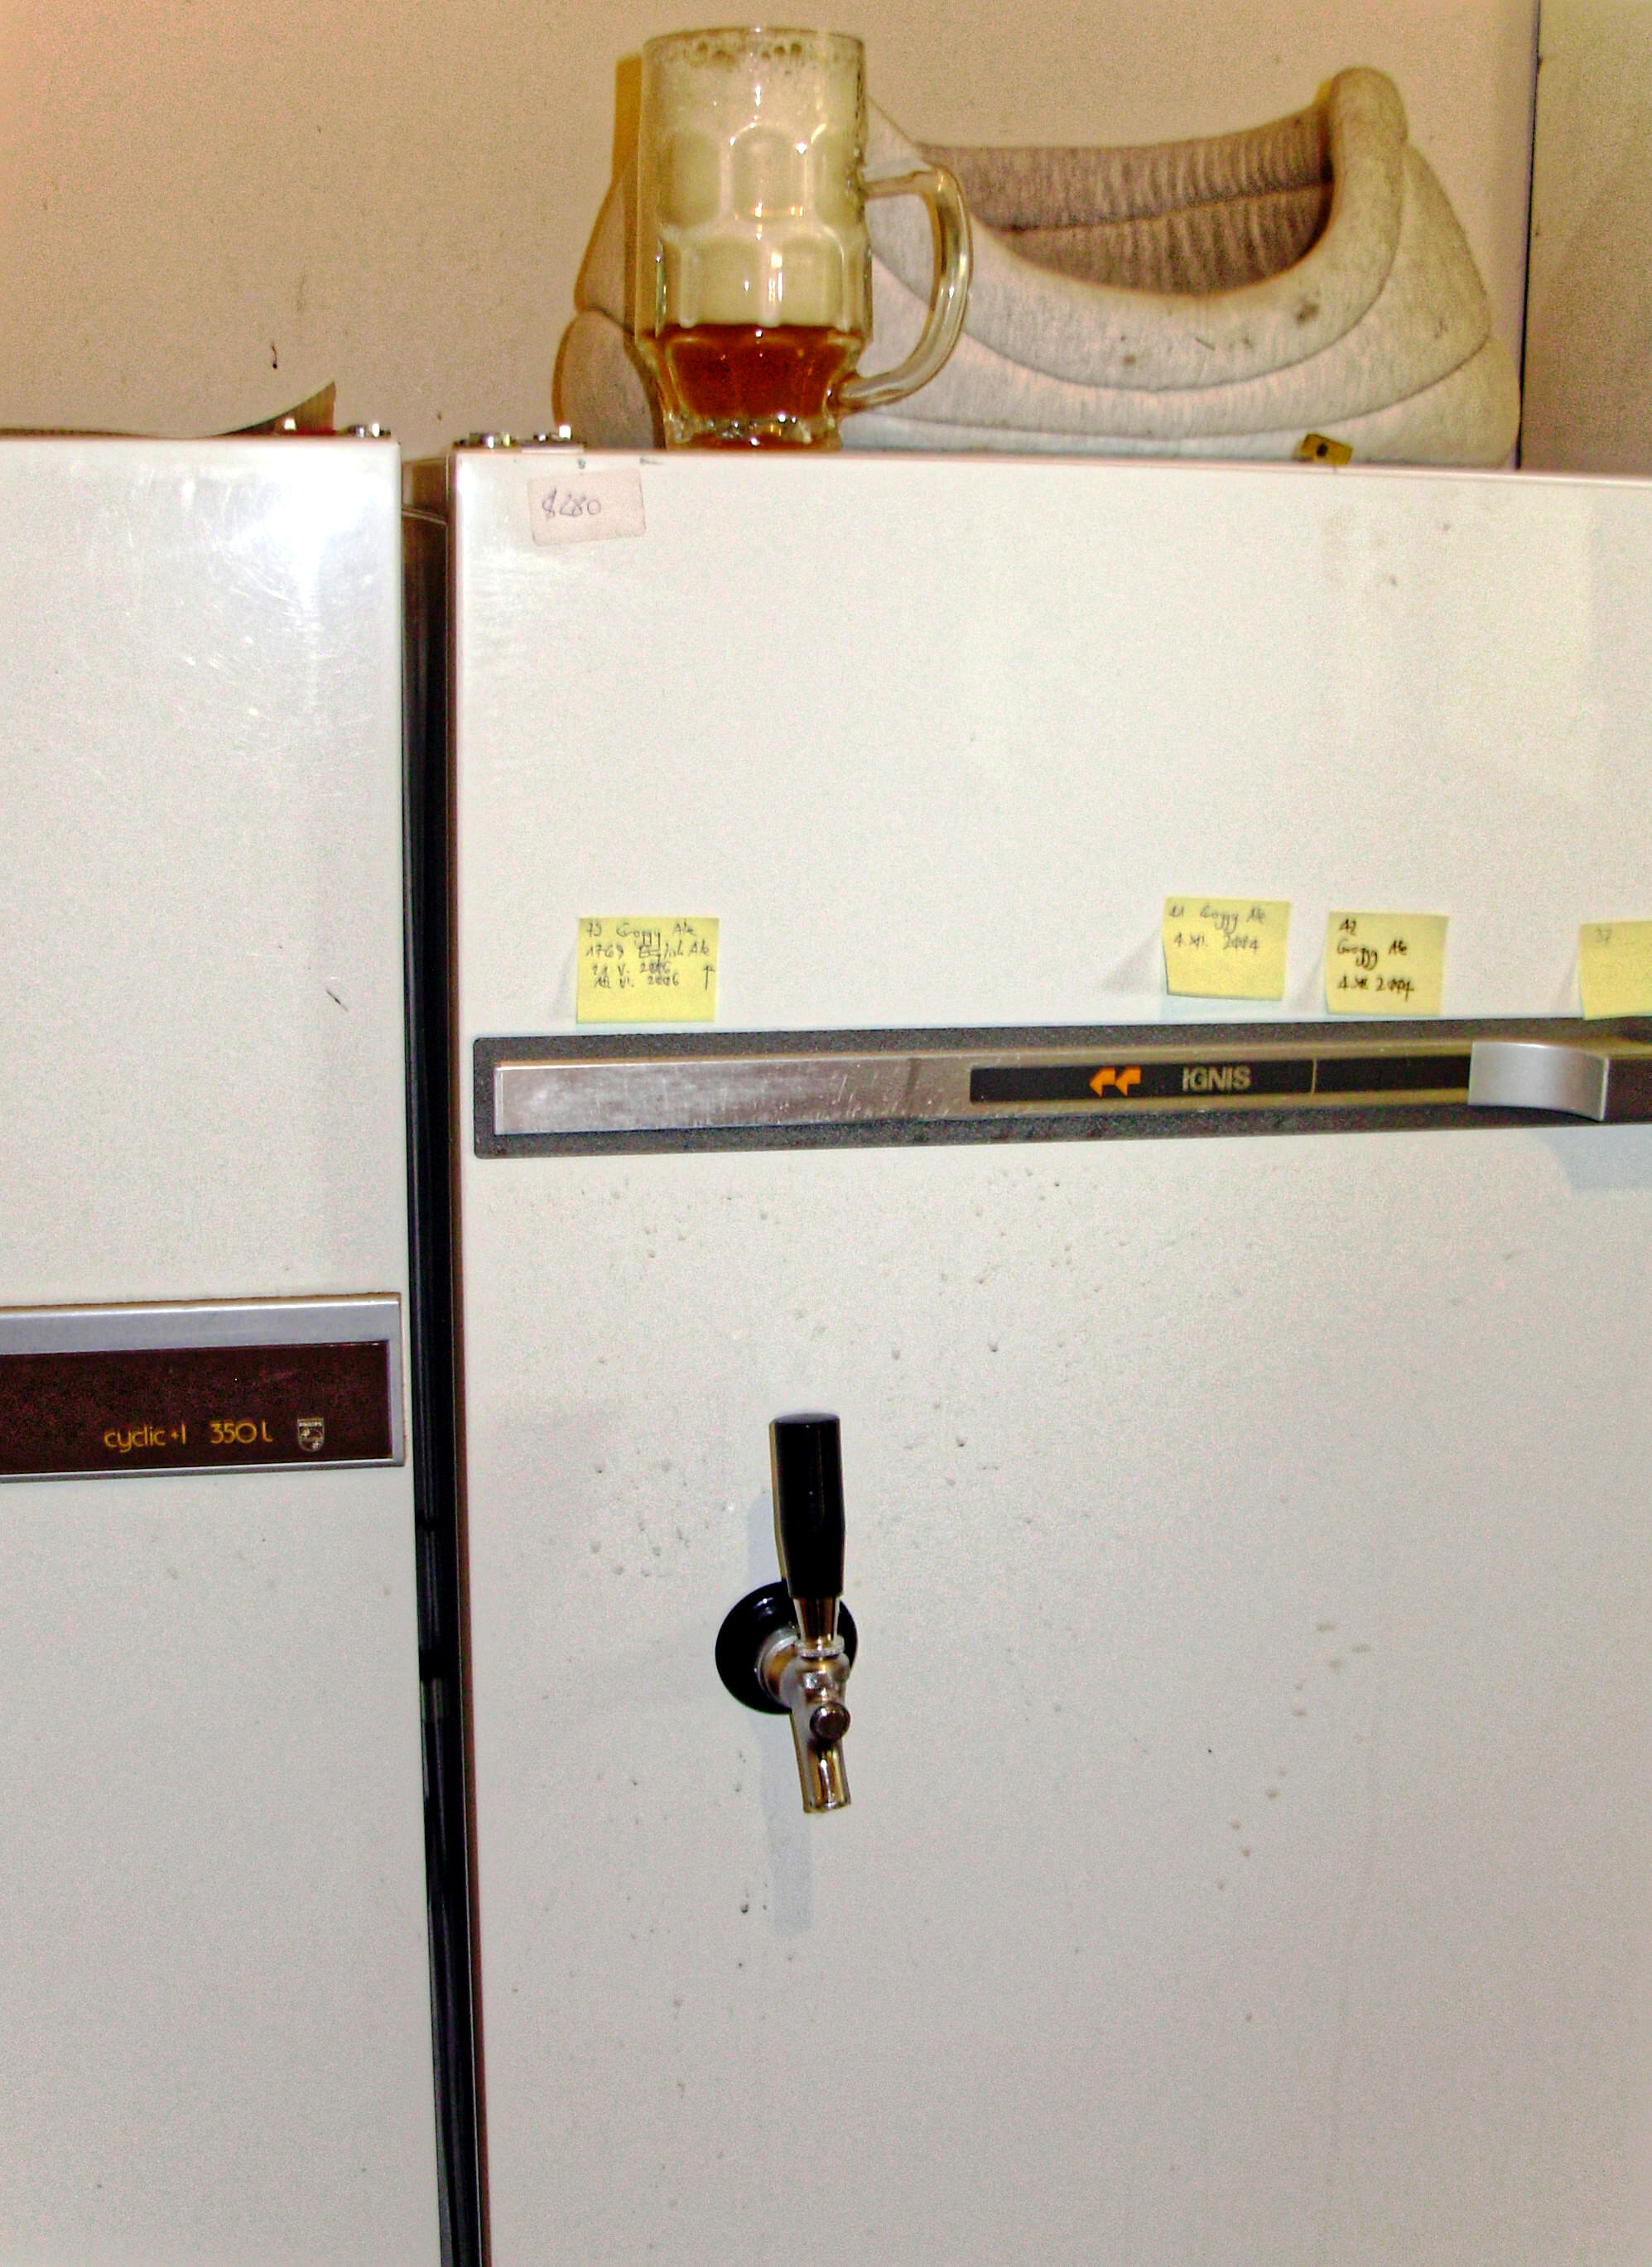 This should be fridge.jpeg.  Is it missing?